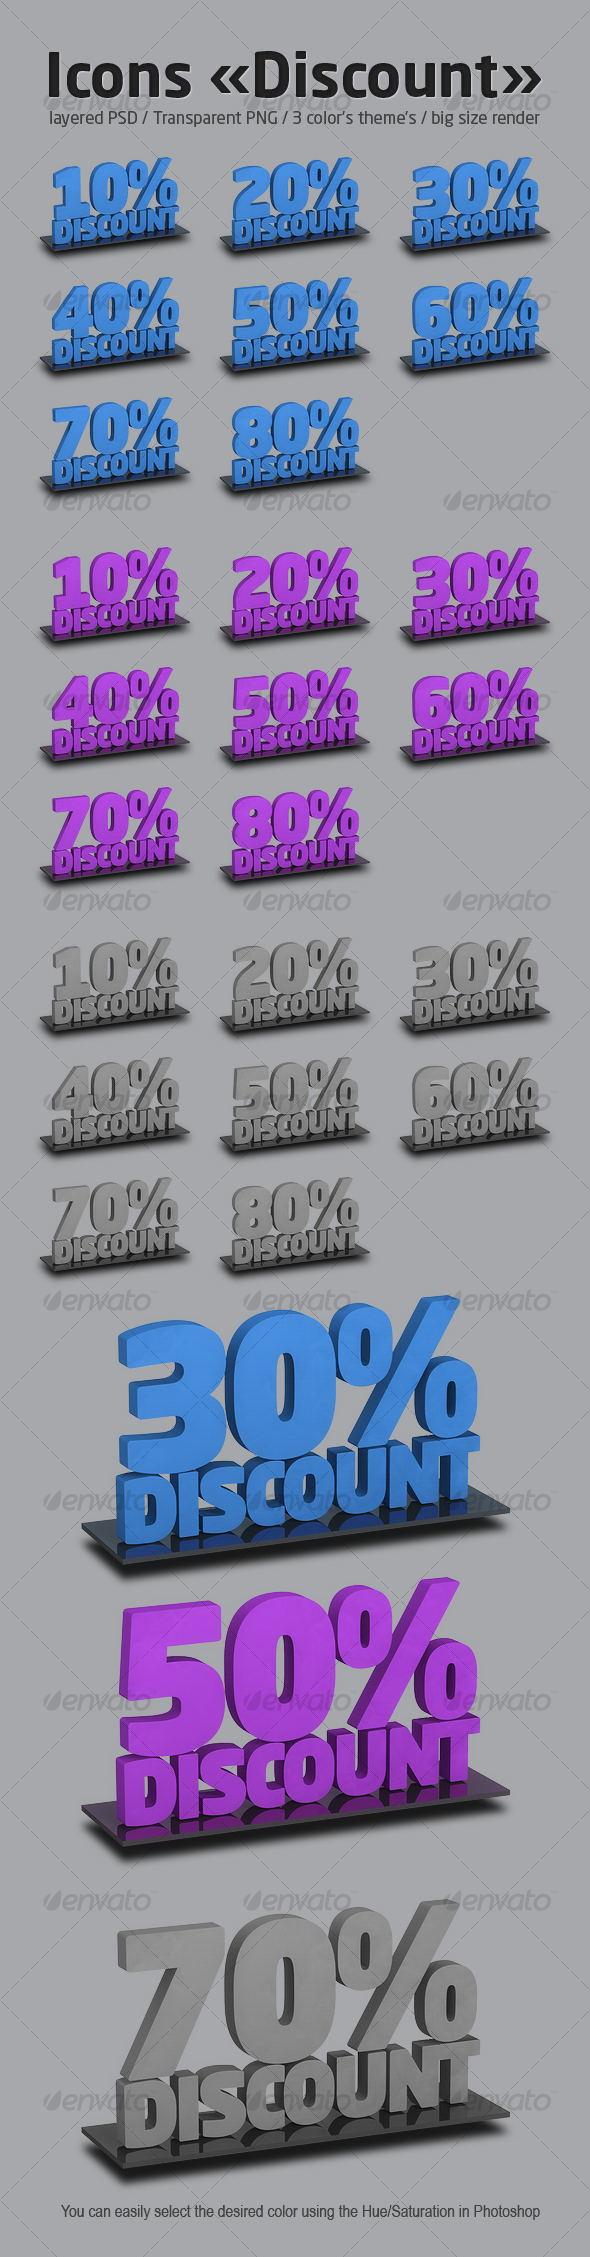 Icons set «Discount» - Business Icons